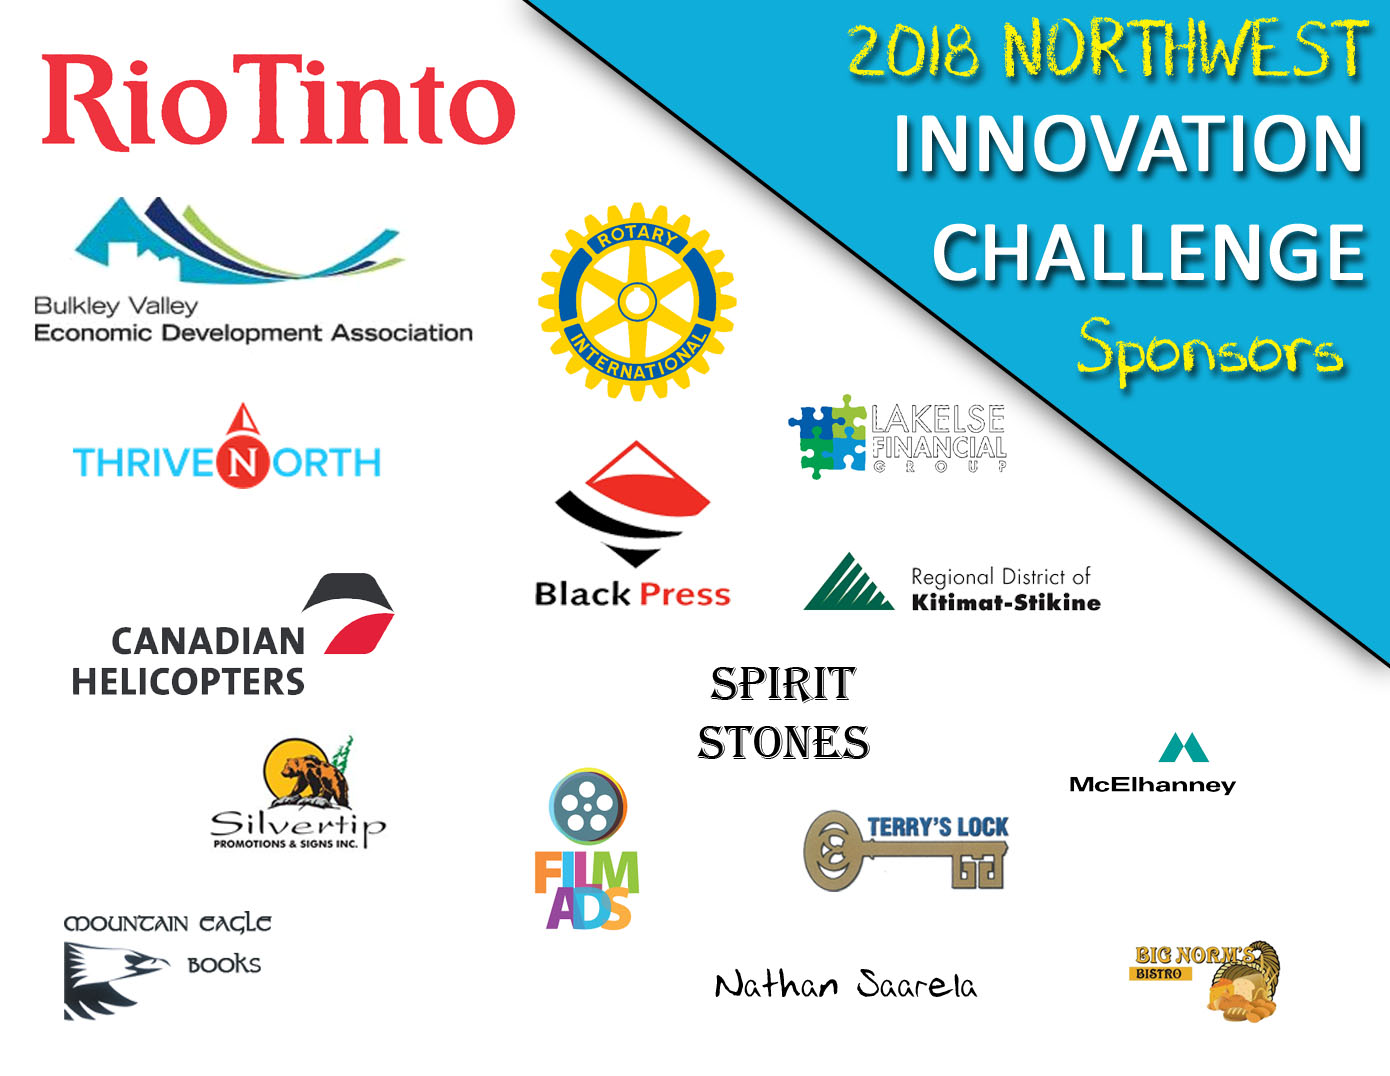 Innovation Challenge Sponsors 01.05.2018 copy